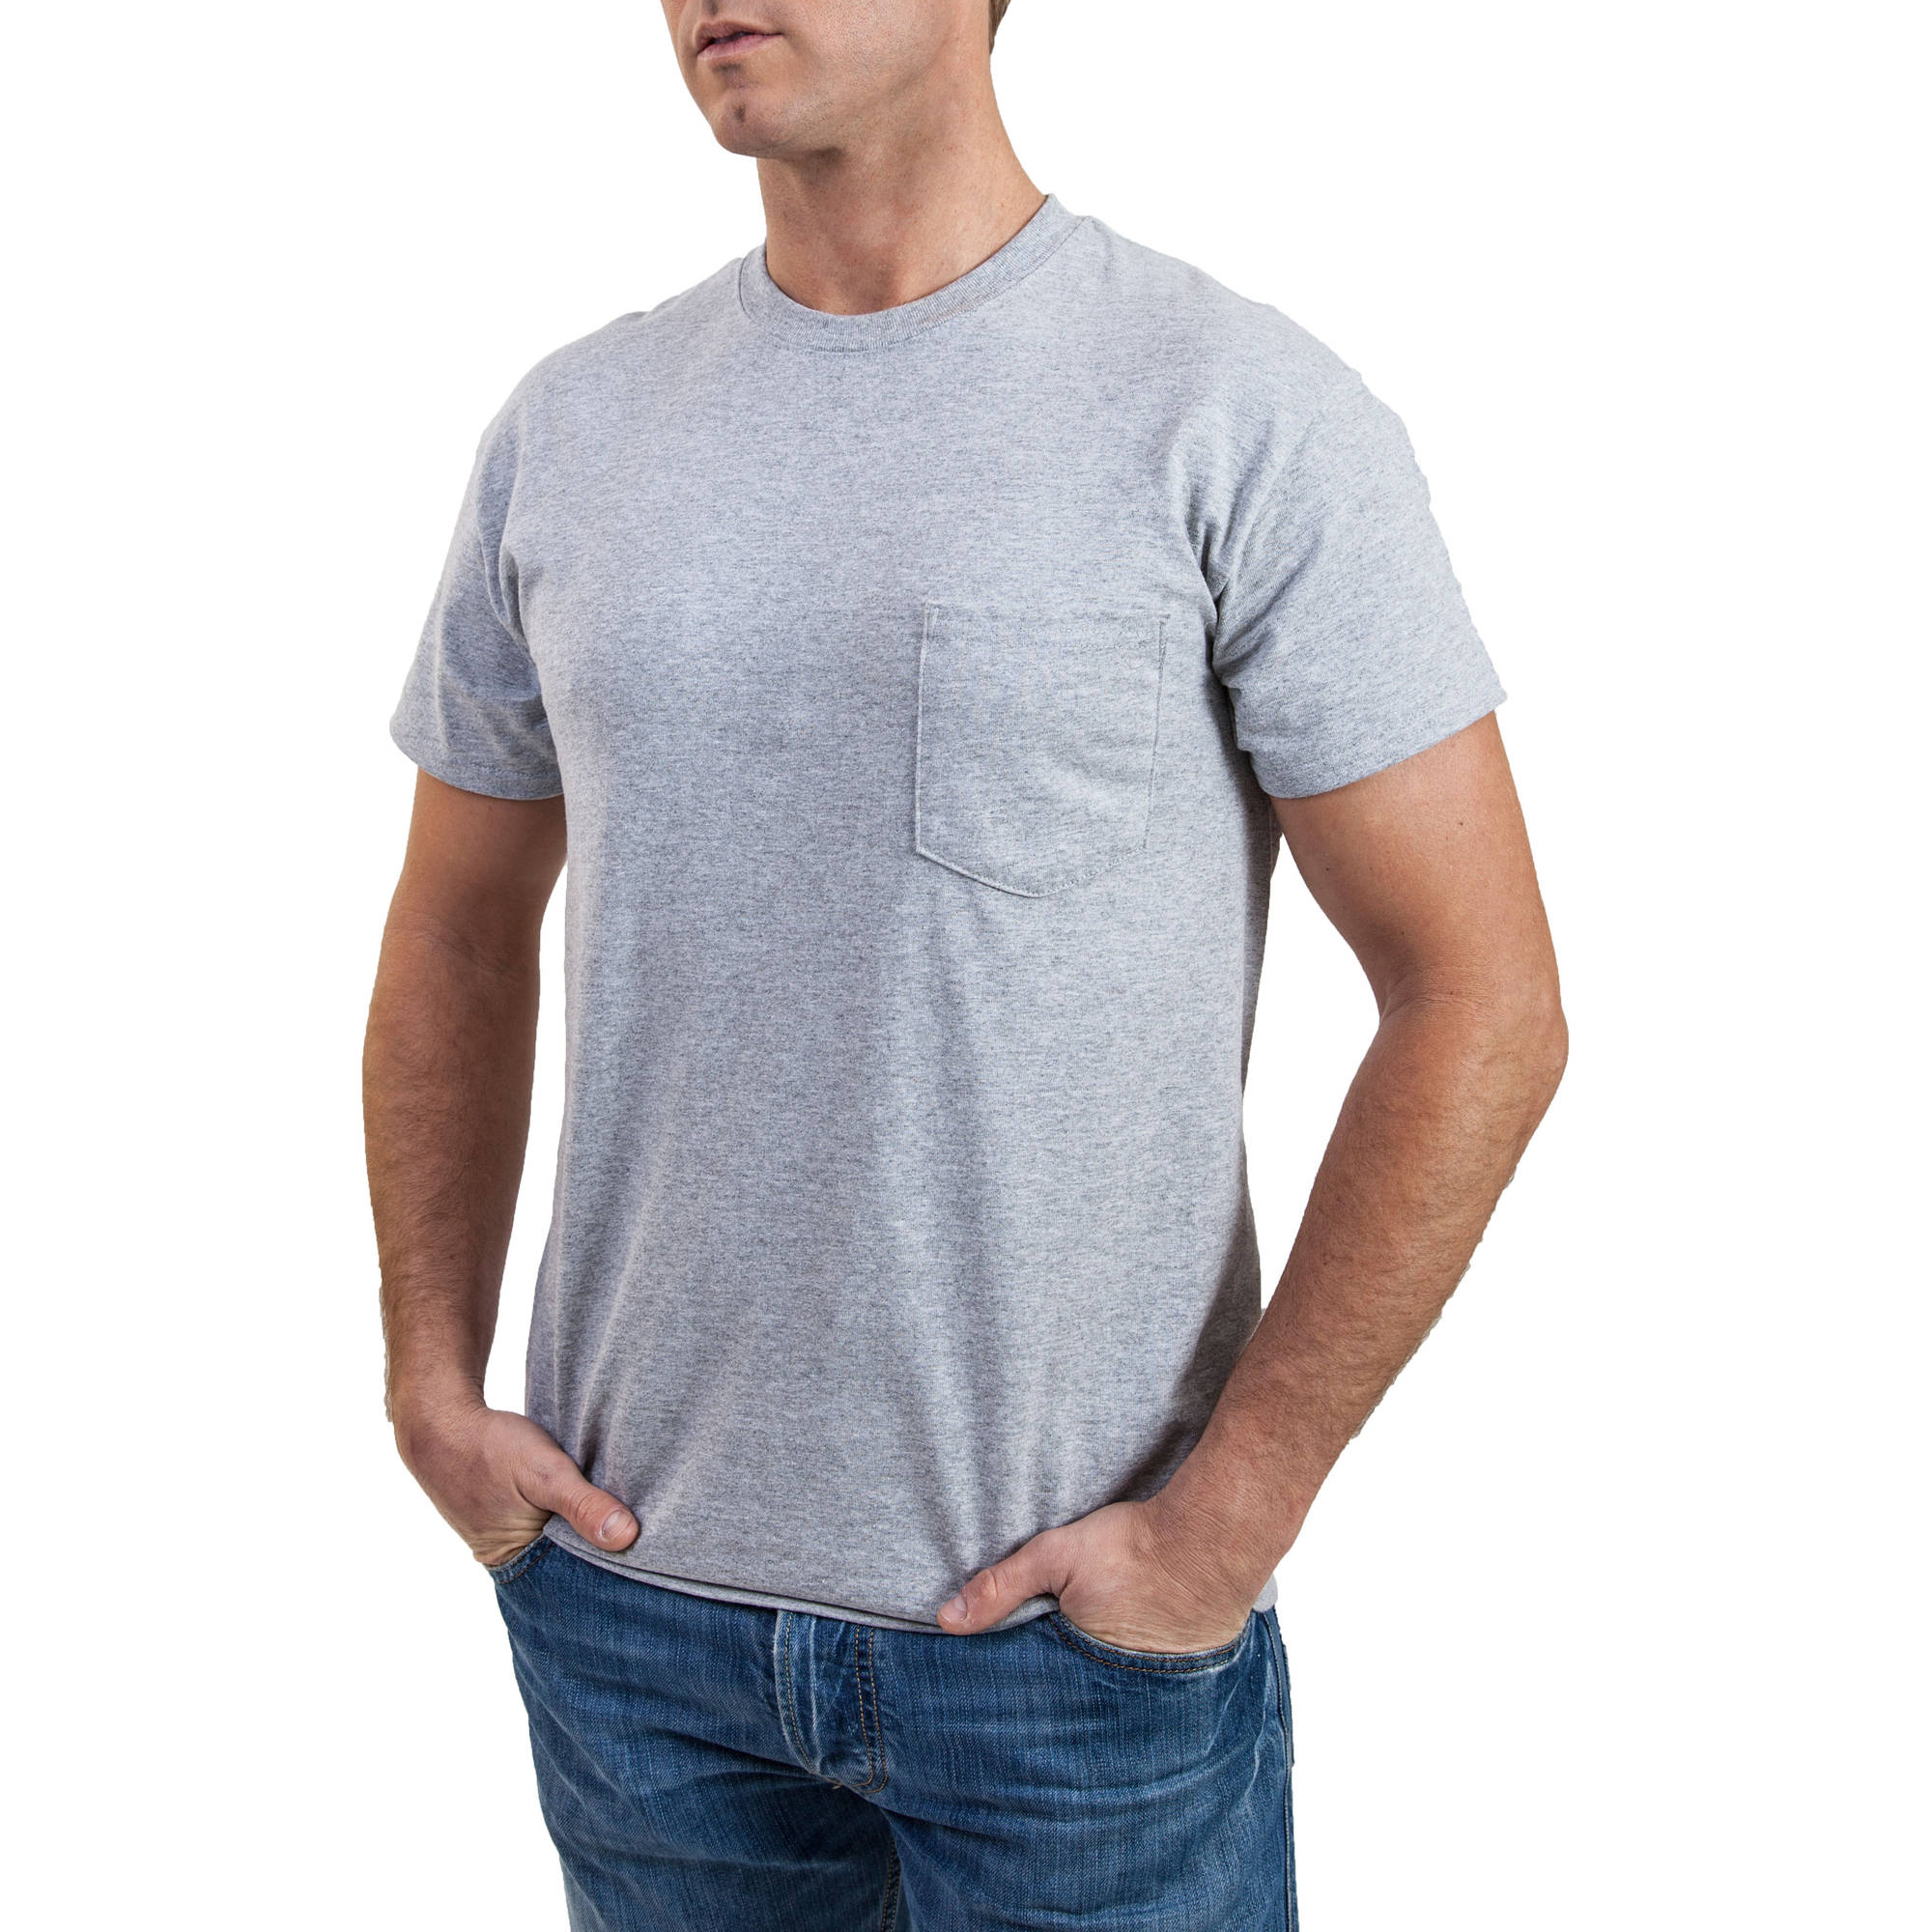 Men's Black and Grey Pocket Crew T-Shirt, 2-Pack